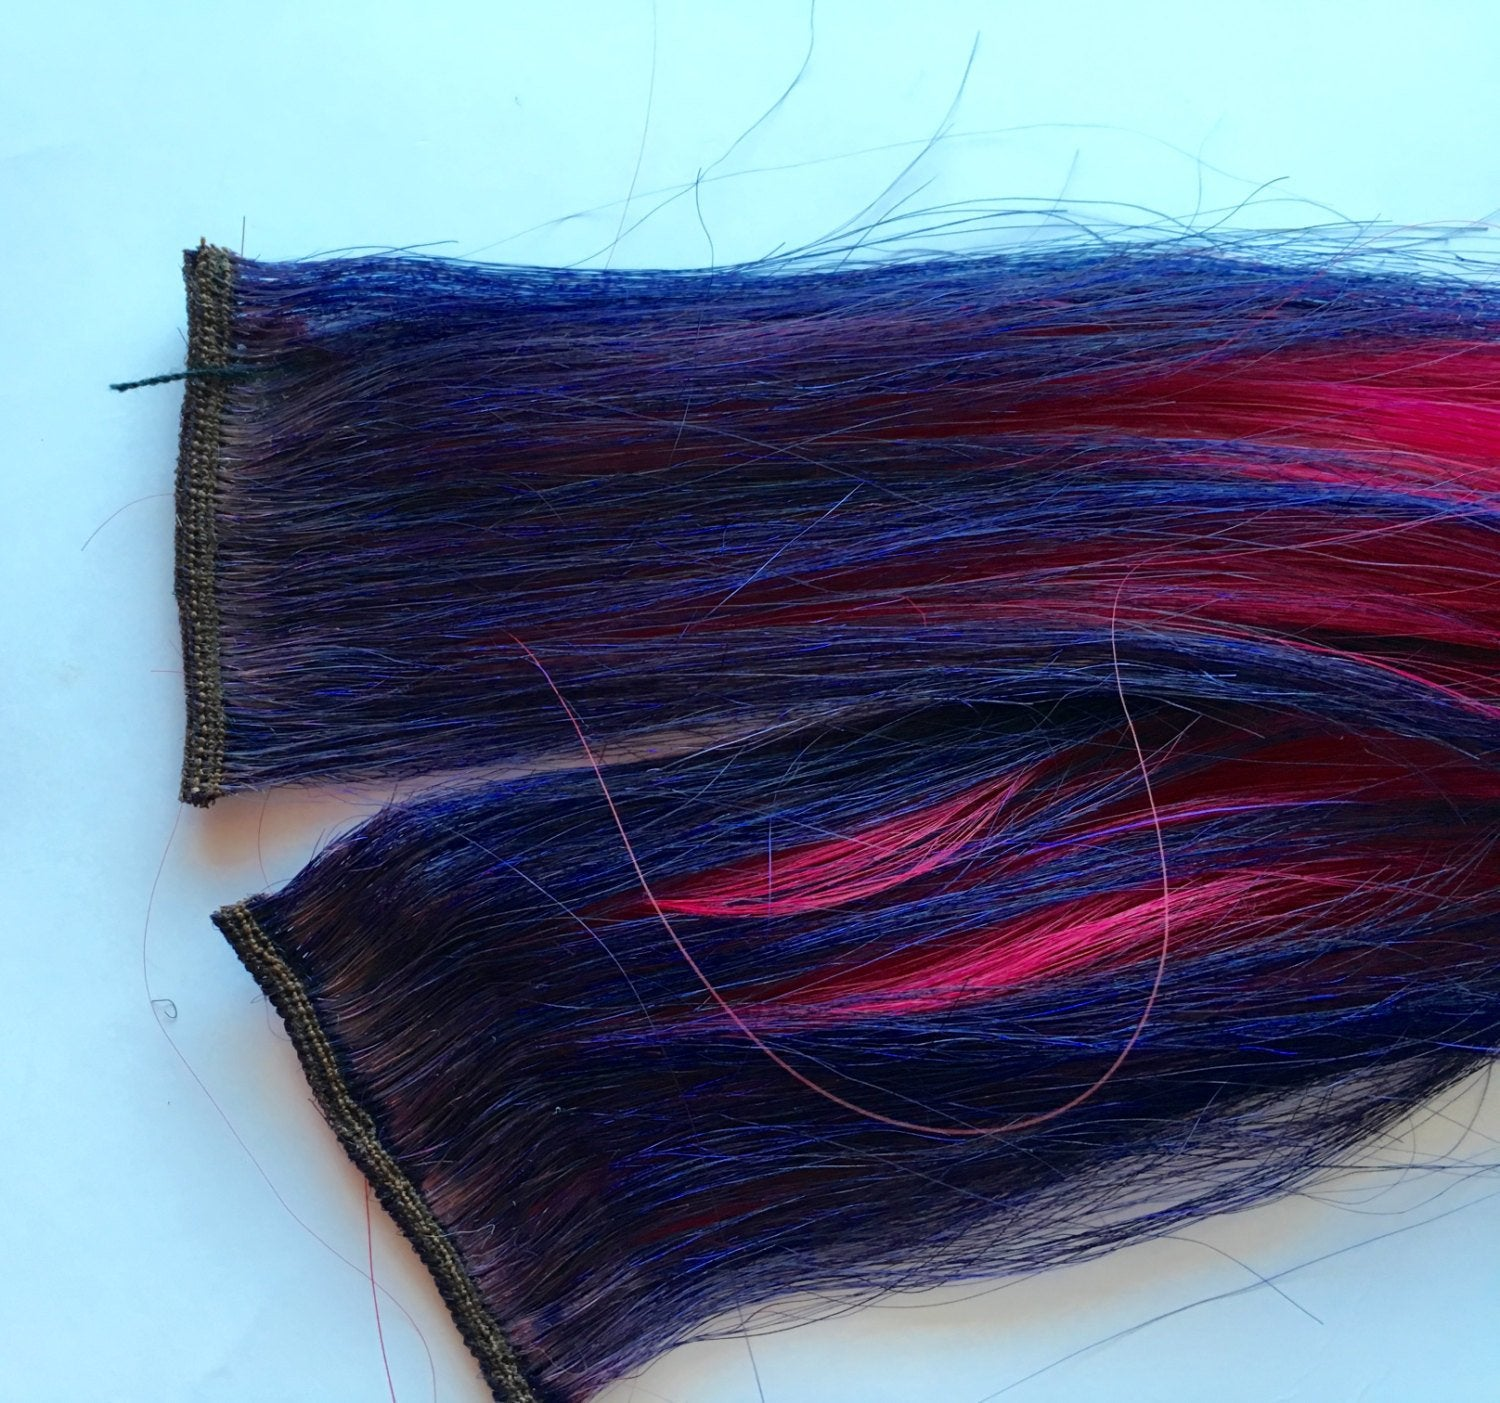 12-14 inch 100% Human Hair Extensions Ombre Deep Purple and Hot Pink Fuchsia Clip in or Tape style